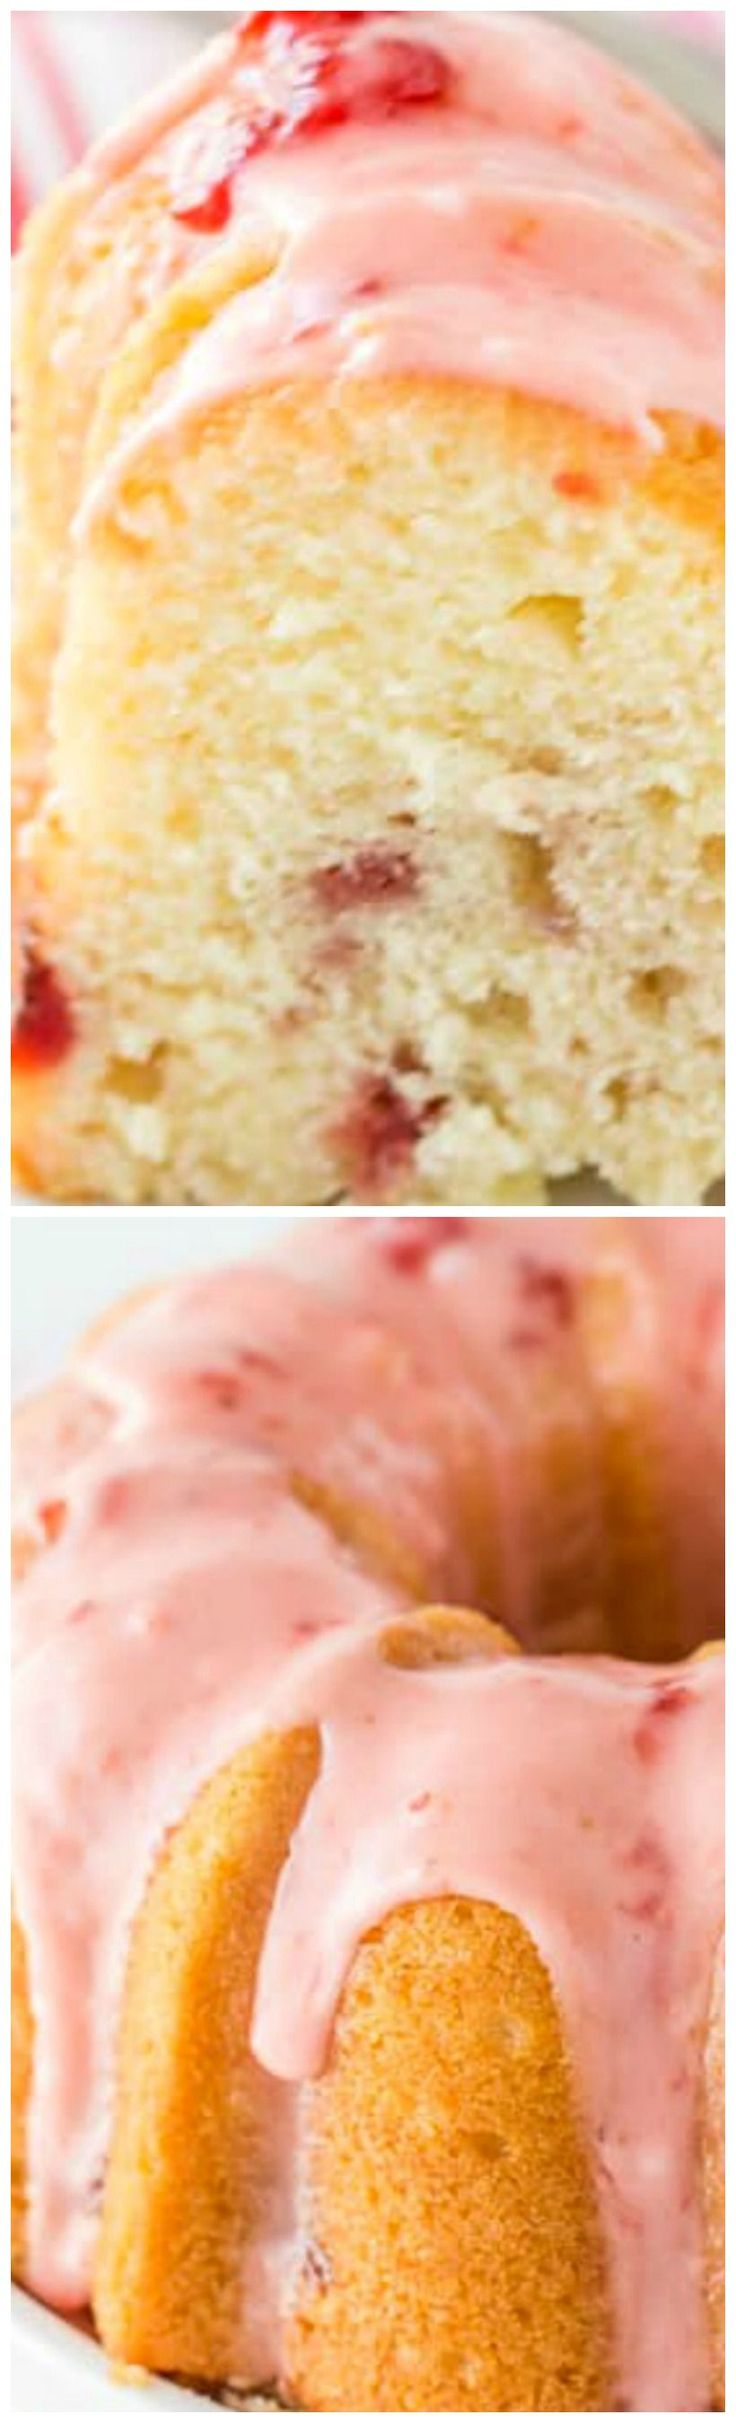 Strawberry Lemonade Pound Cake ~ A luscious sweet lemon pound cake is infused with strawberries and topped with a strawberry glaze